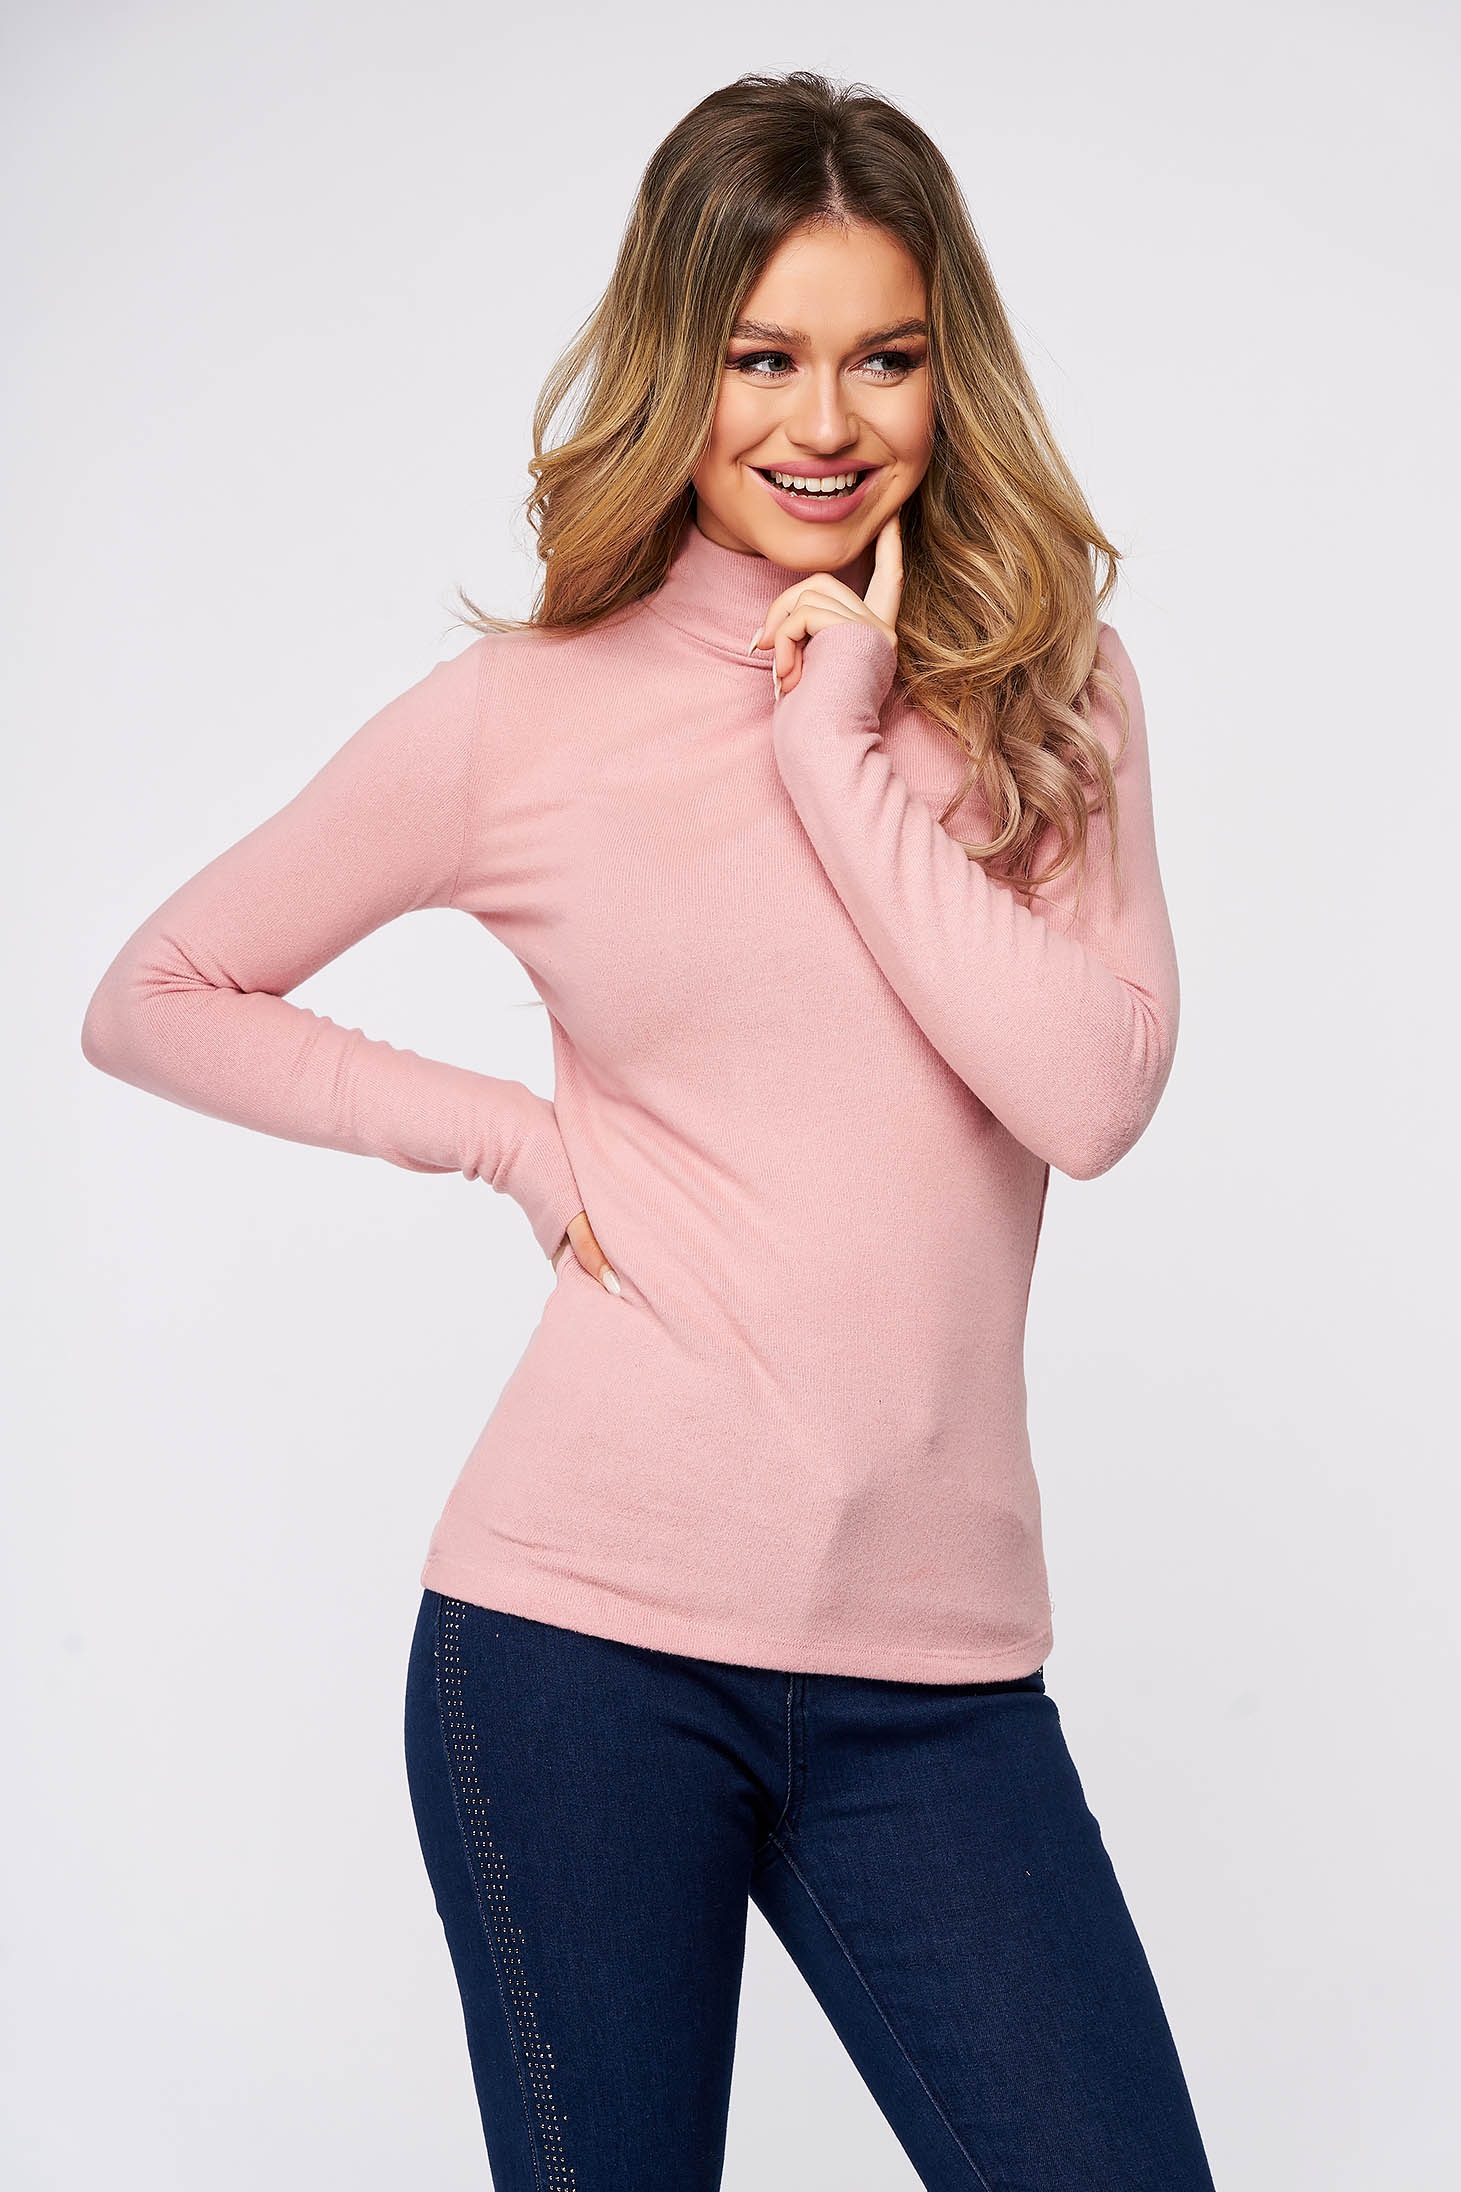 Lightpink women`s blouse cotton with turtle neck from elastic and fine fabric soft fabric